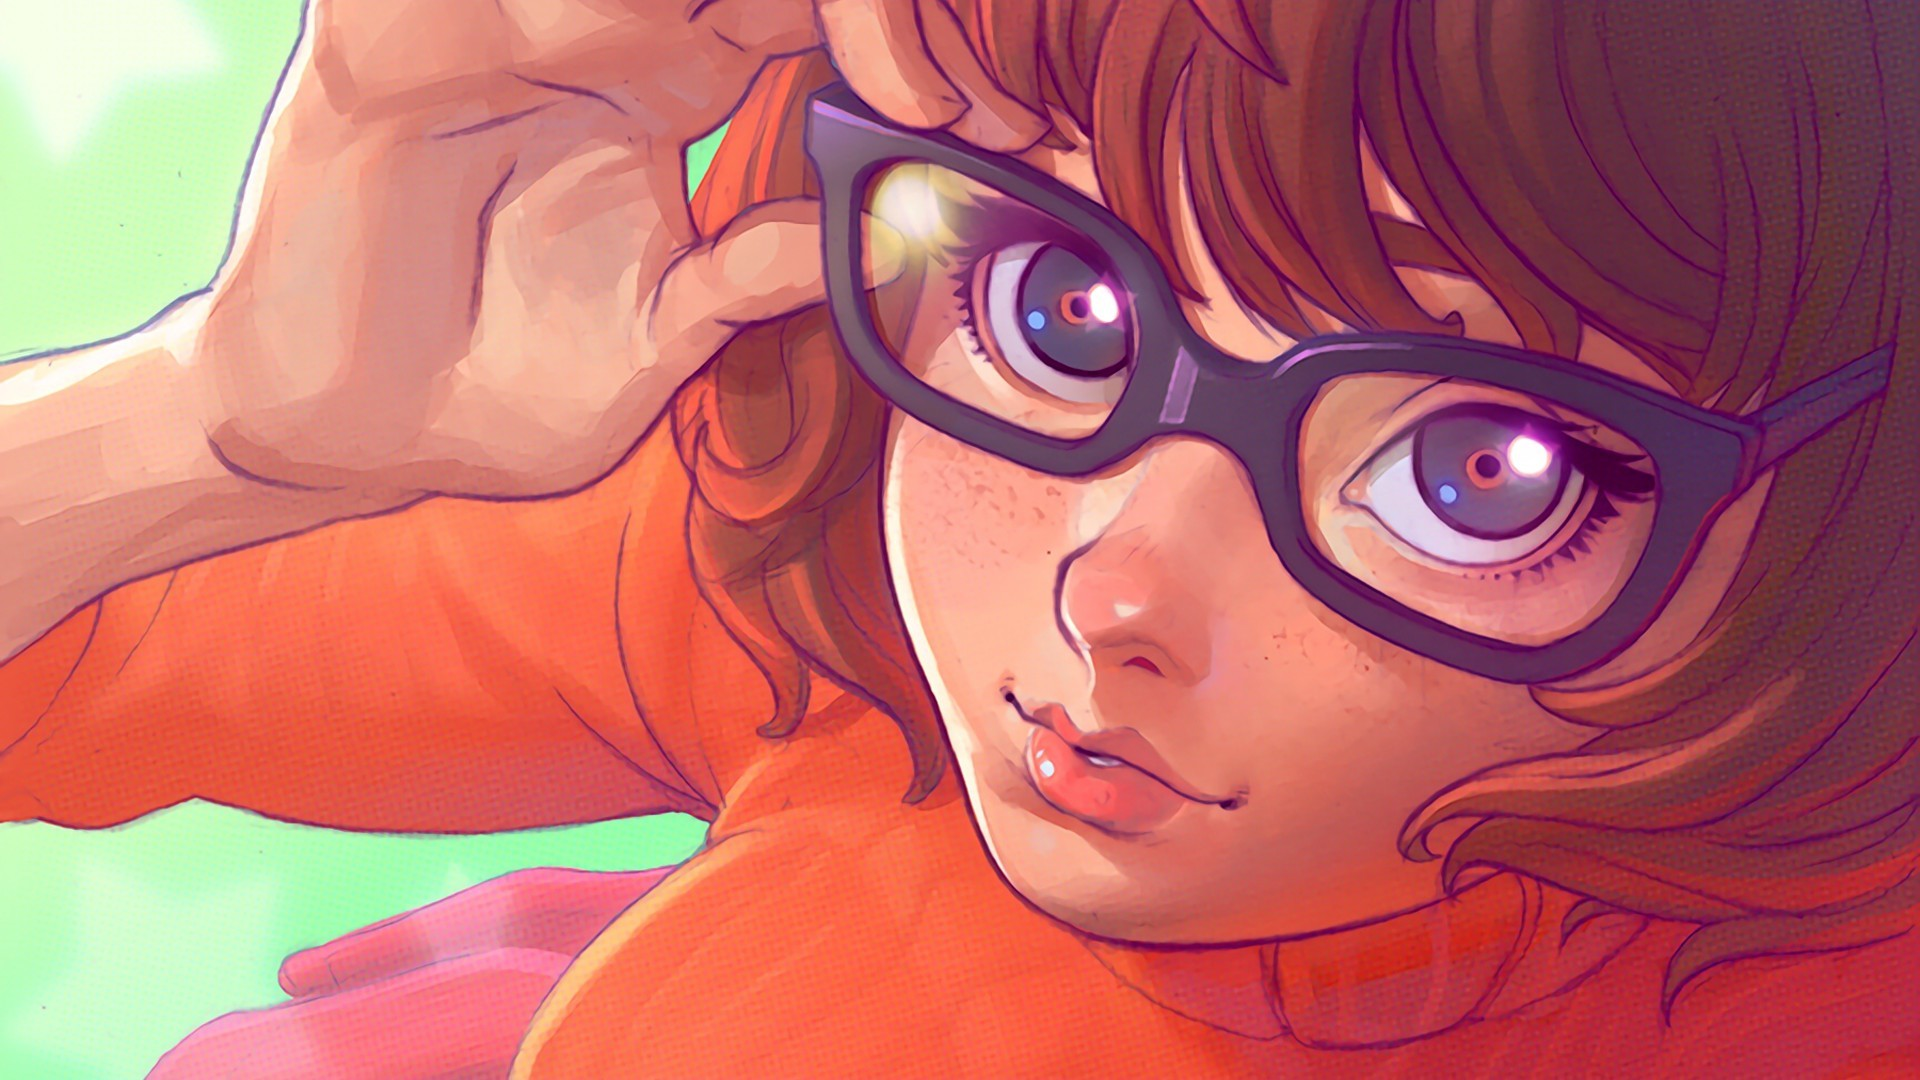 1920x1080 Ilya Kuvshinov, Velma Dinkley, Drawing, Scooby Doo, Glasses Wallpapers HD /  Desktop and Mobile Backgrounds